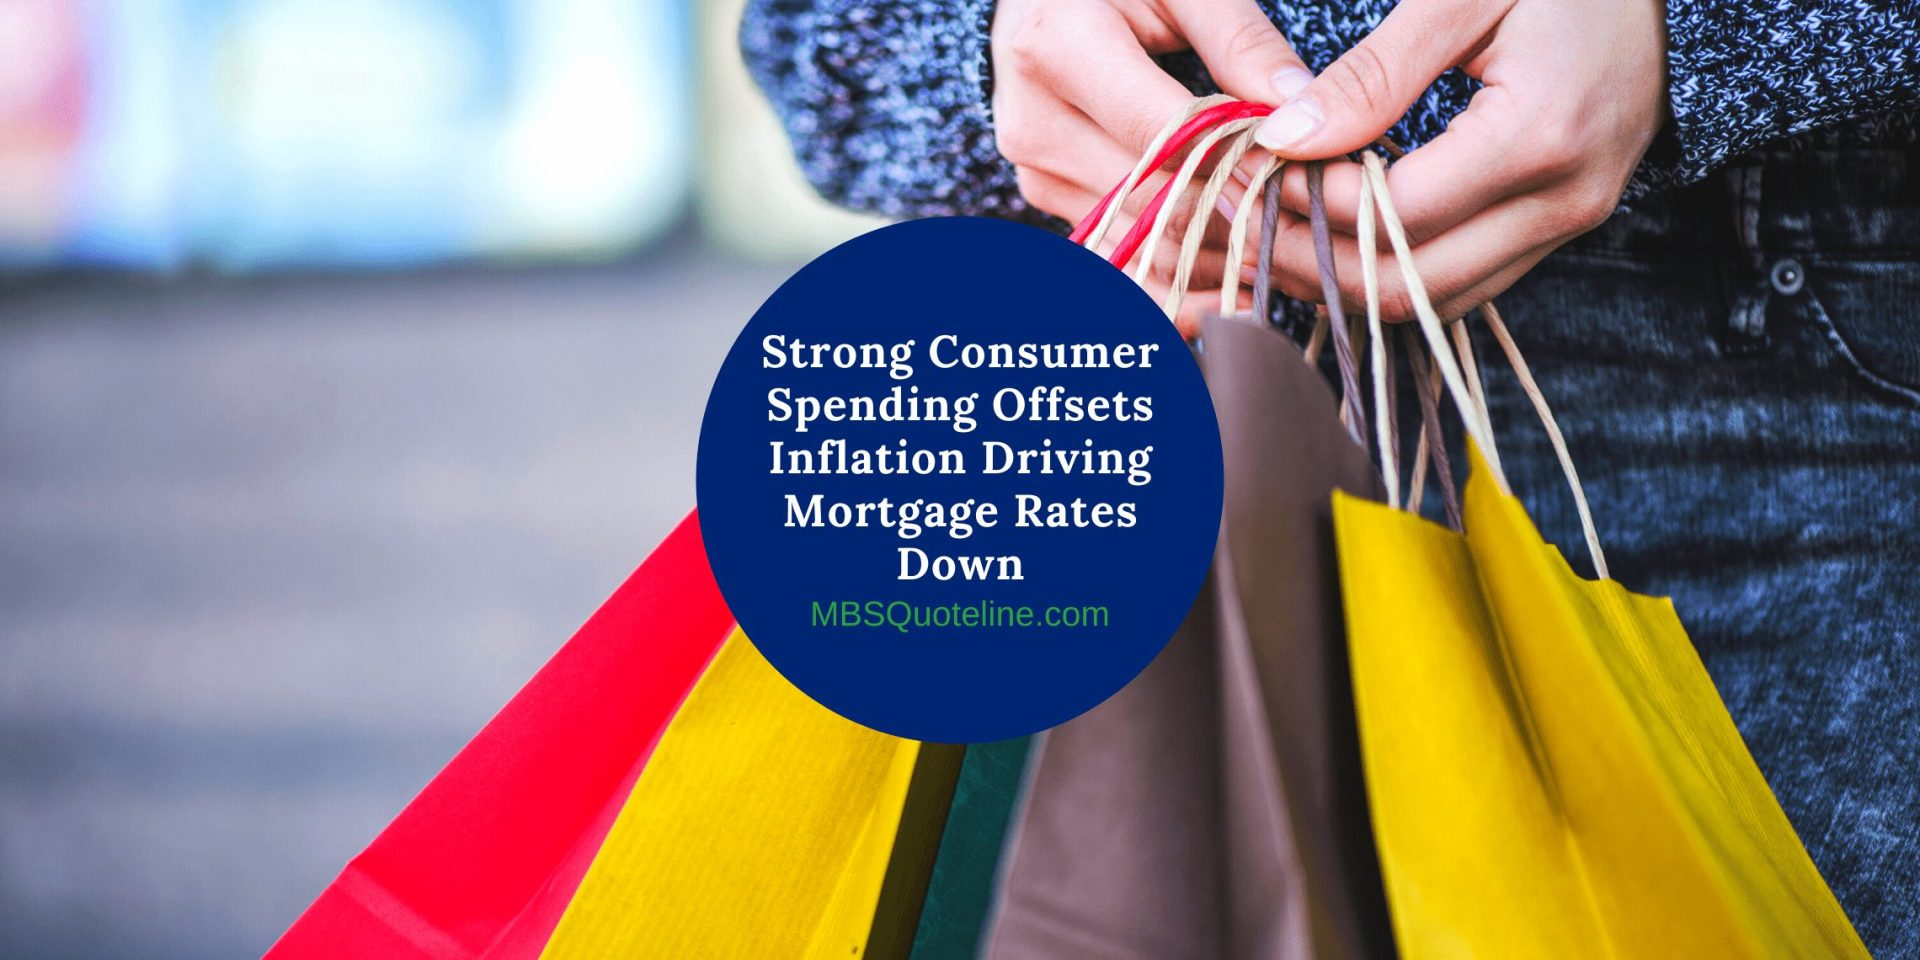 Strong Consumer Spending Offsets Inflation Driving Mortgage Rates Down mortgagetime mbsquoteline featured